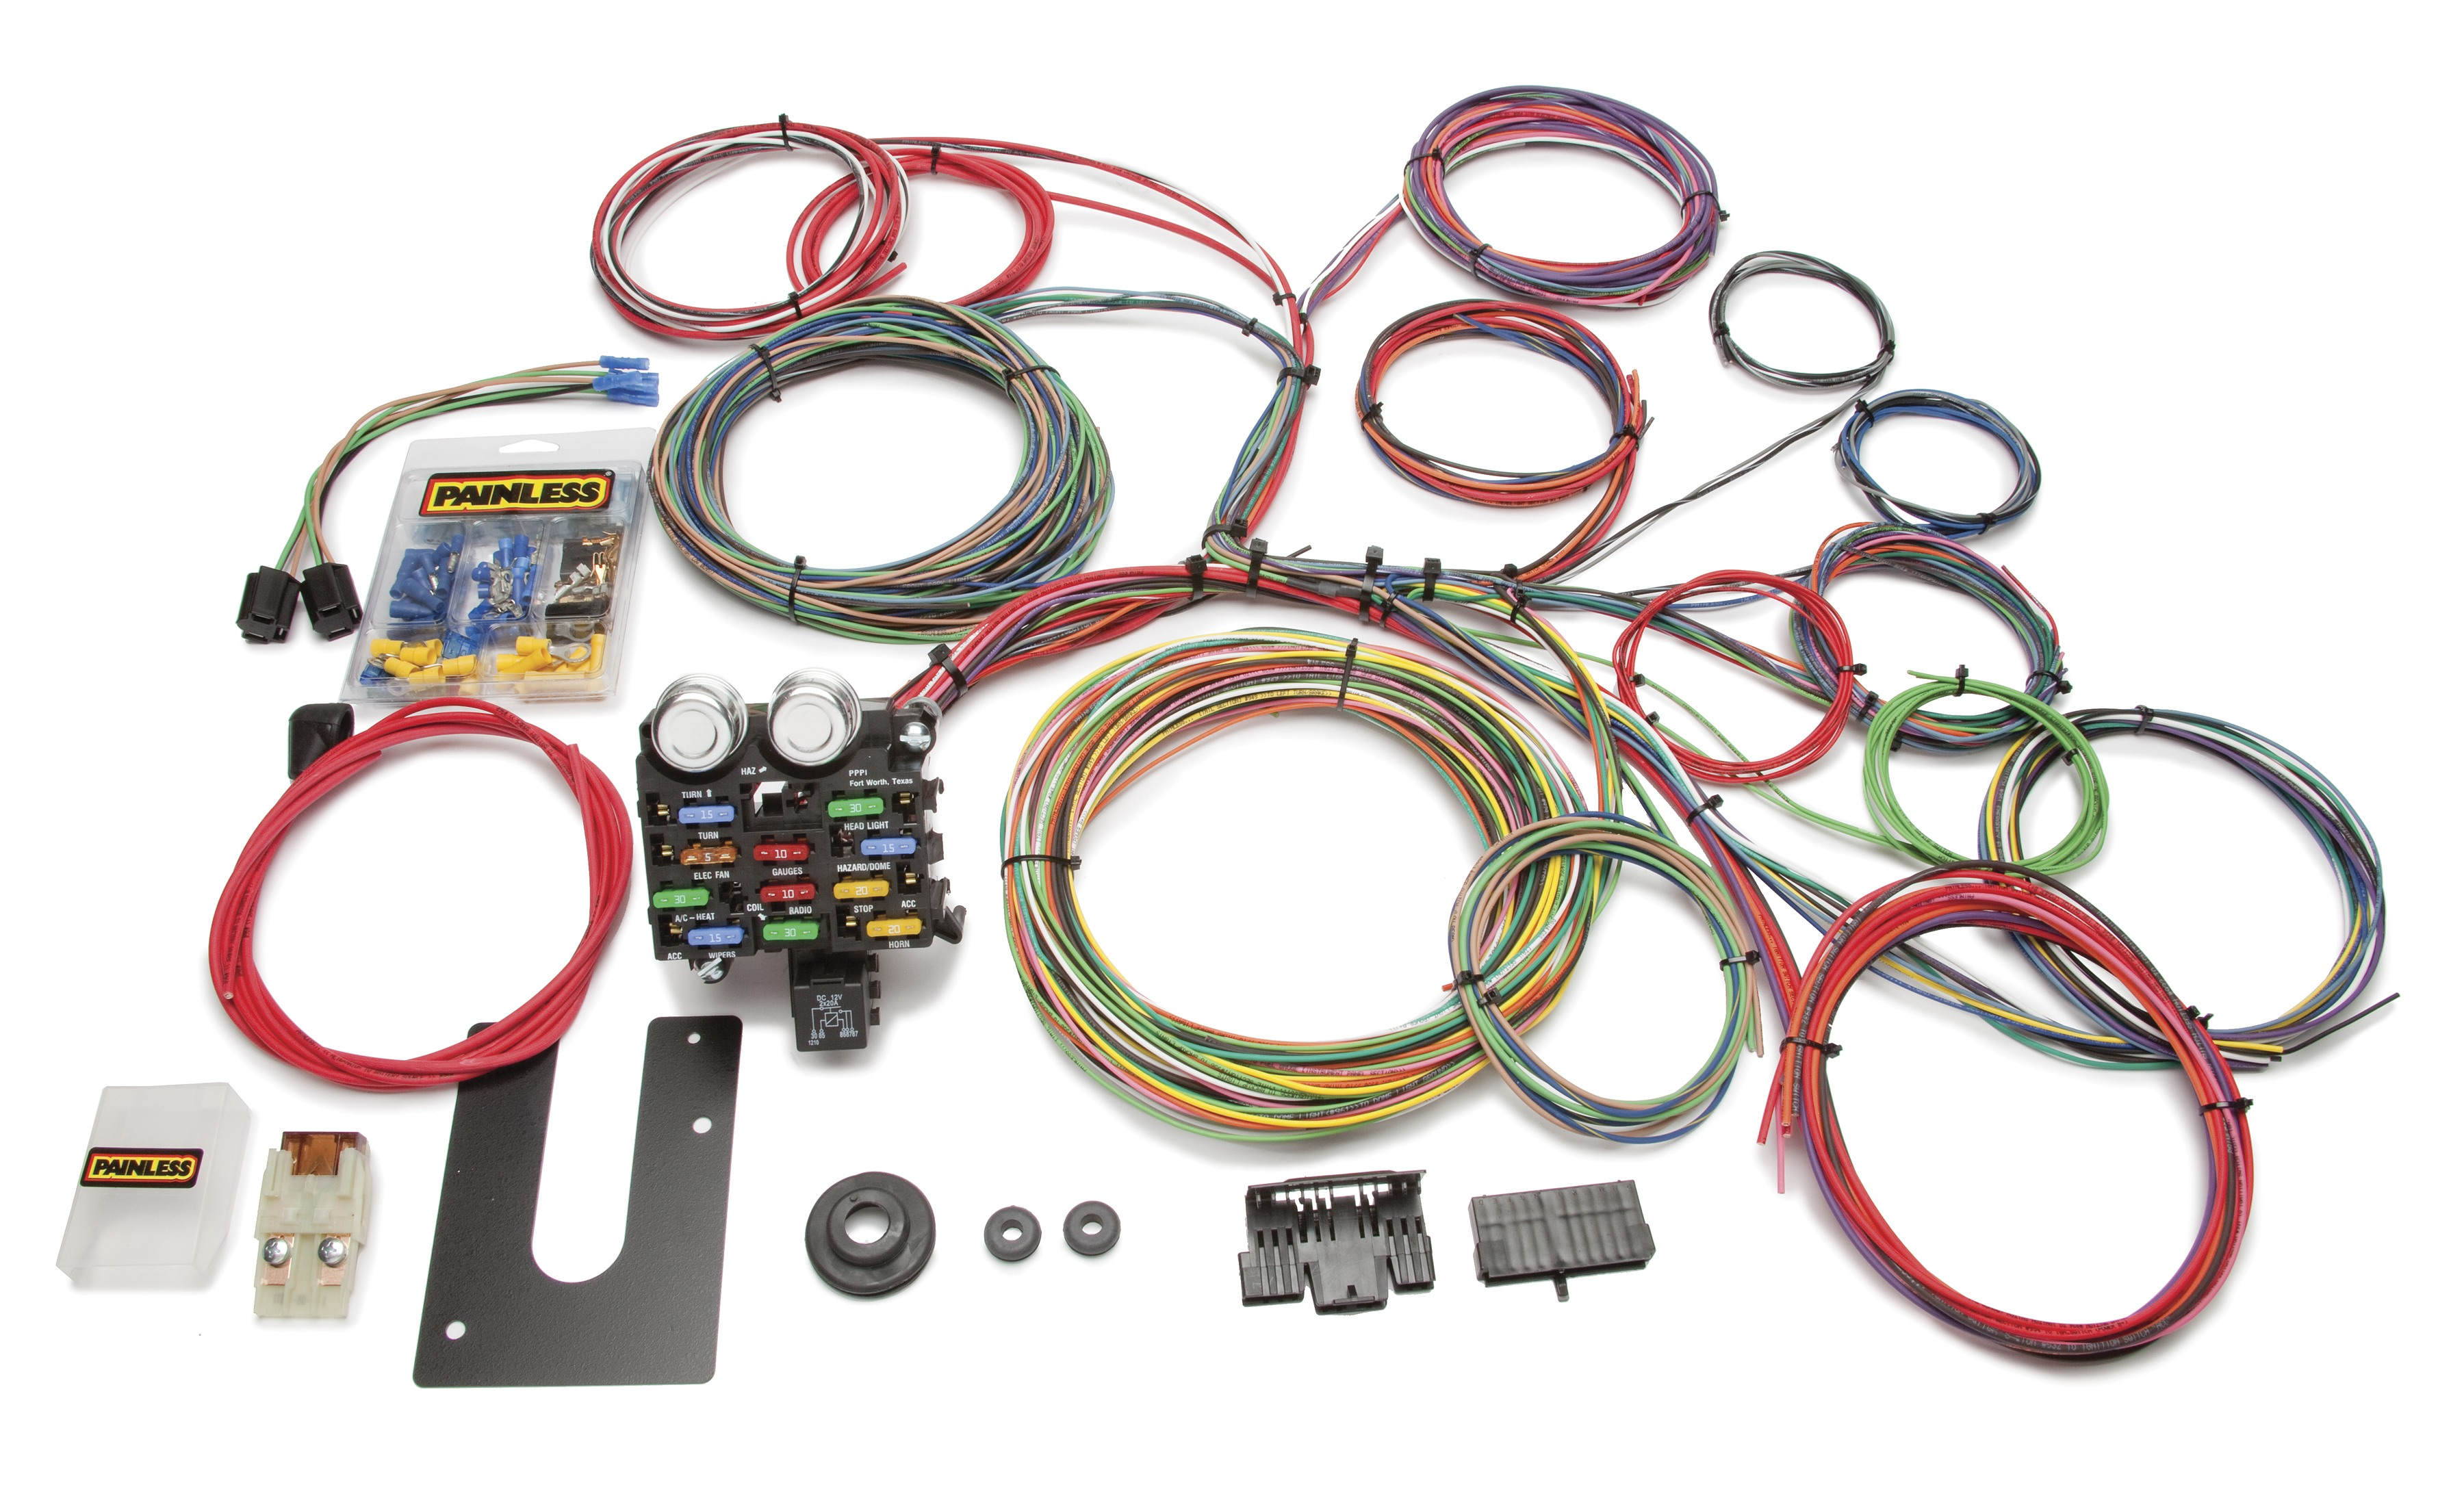 20 Circuit Wiring Harness Solutions New At Summit Racing Equipment Painless Performance Chassis Boat Building Standards Basic Electricity Your Rh Newboatbuilders Com